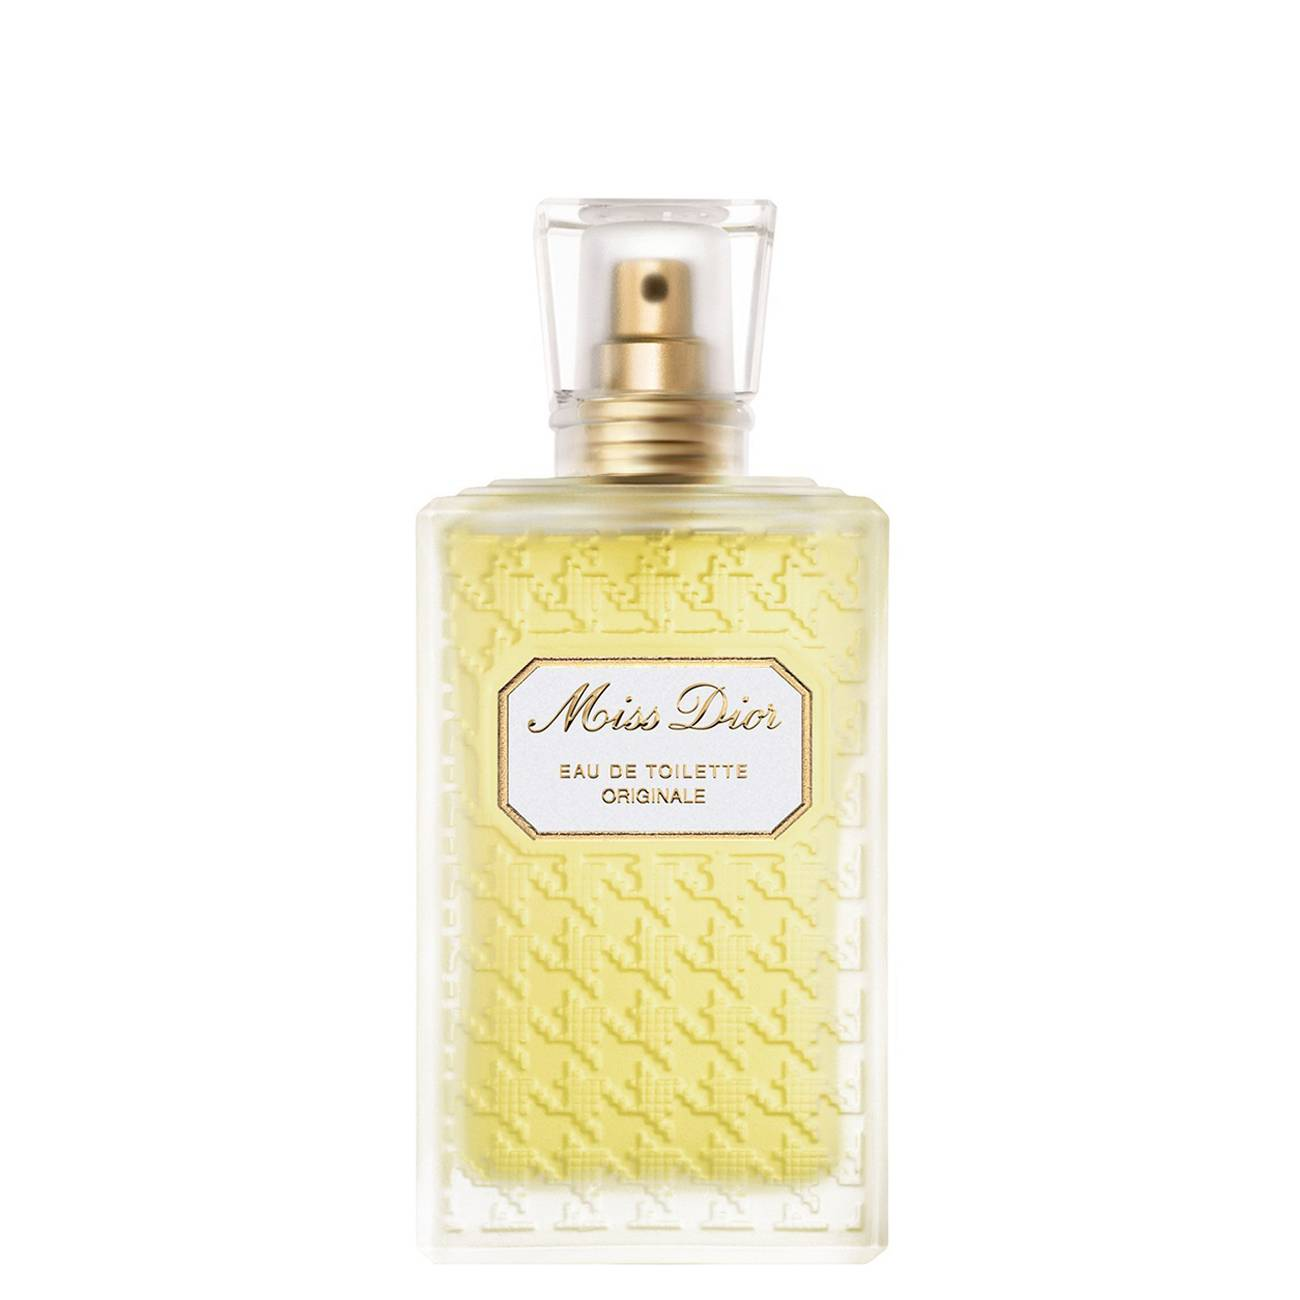 MISS DIOR ORIGINALE 100ml